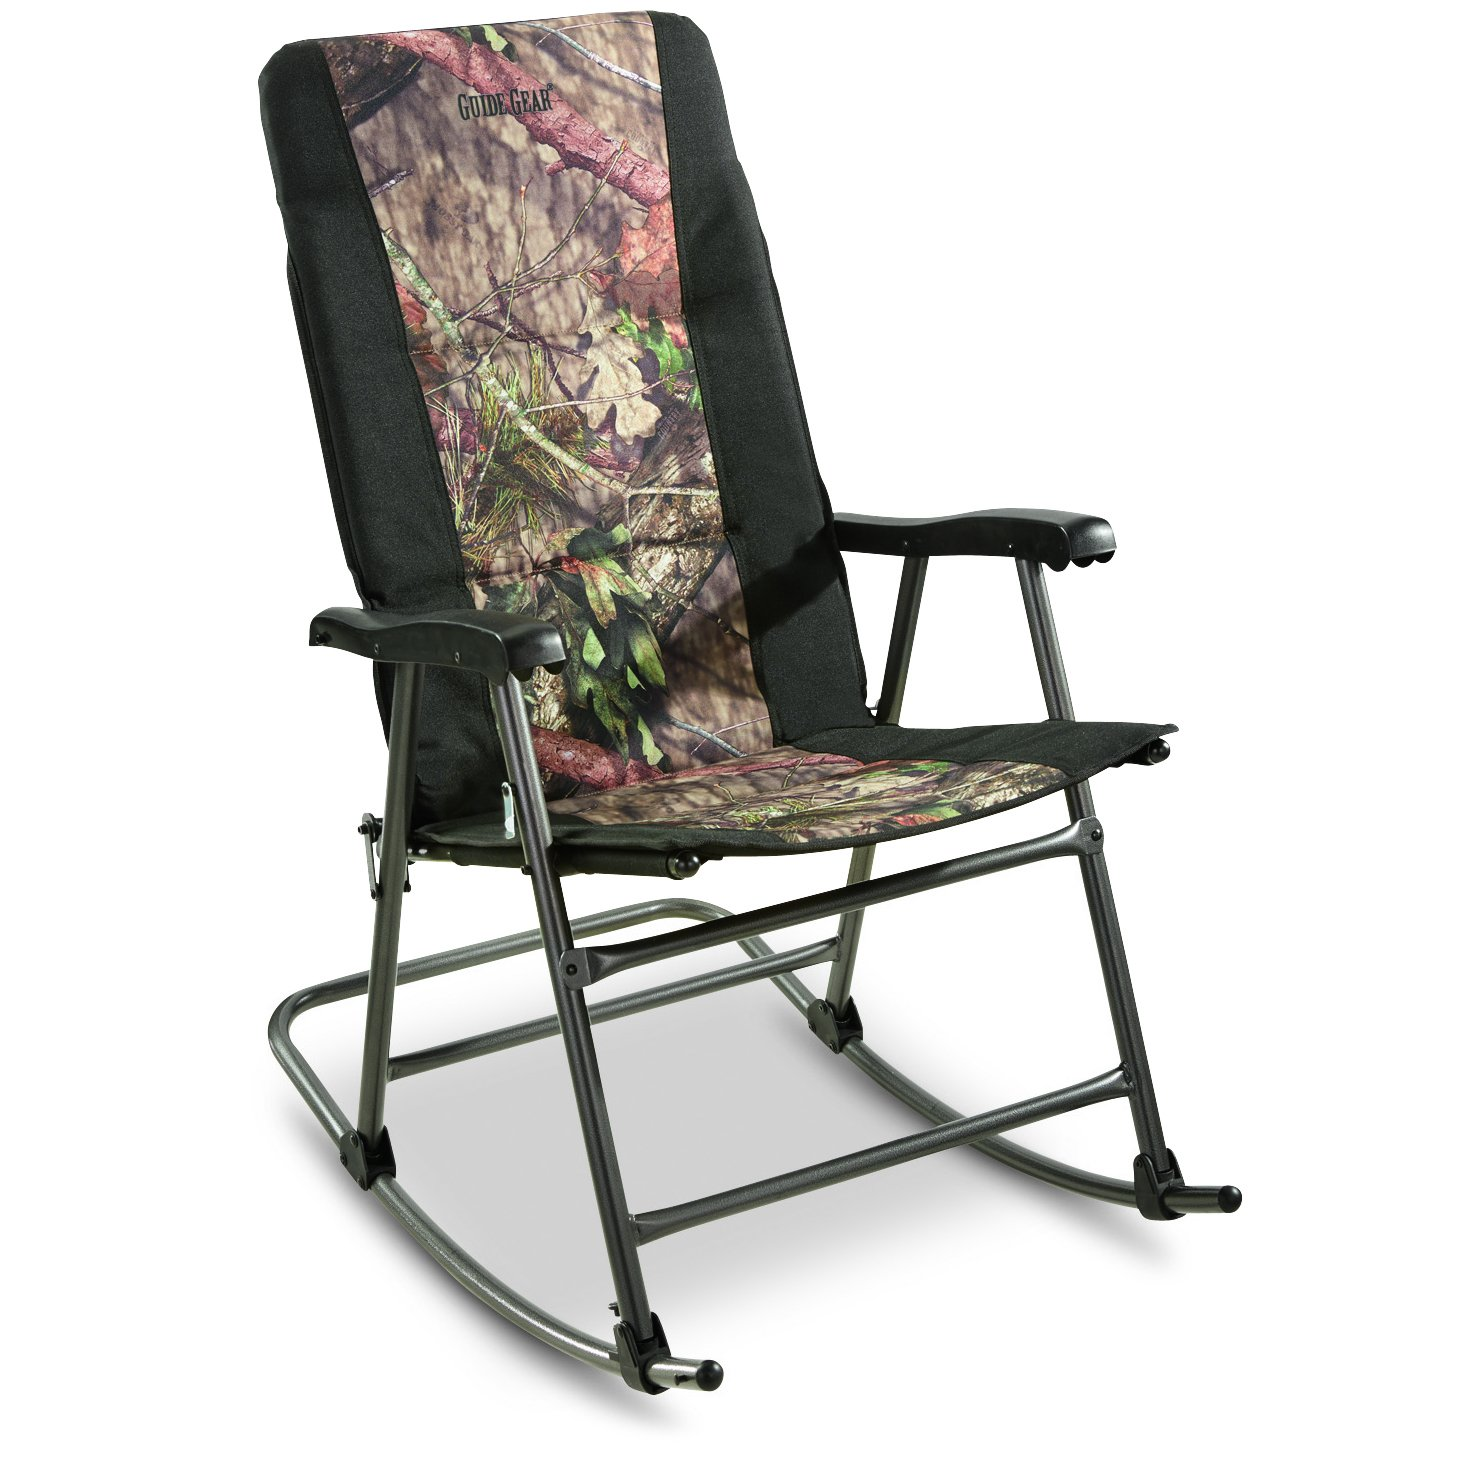 Ordinaire Amazon.com : Guide Gear Oversized Rocking Camp Chair, 500 Lb. Capacity,  Mossy Oak Break Up Country : Sports U0026 Outdoors